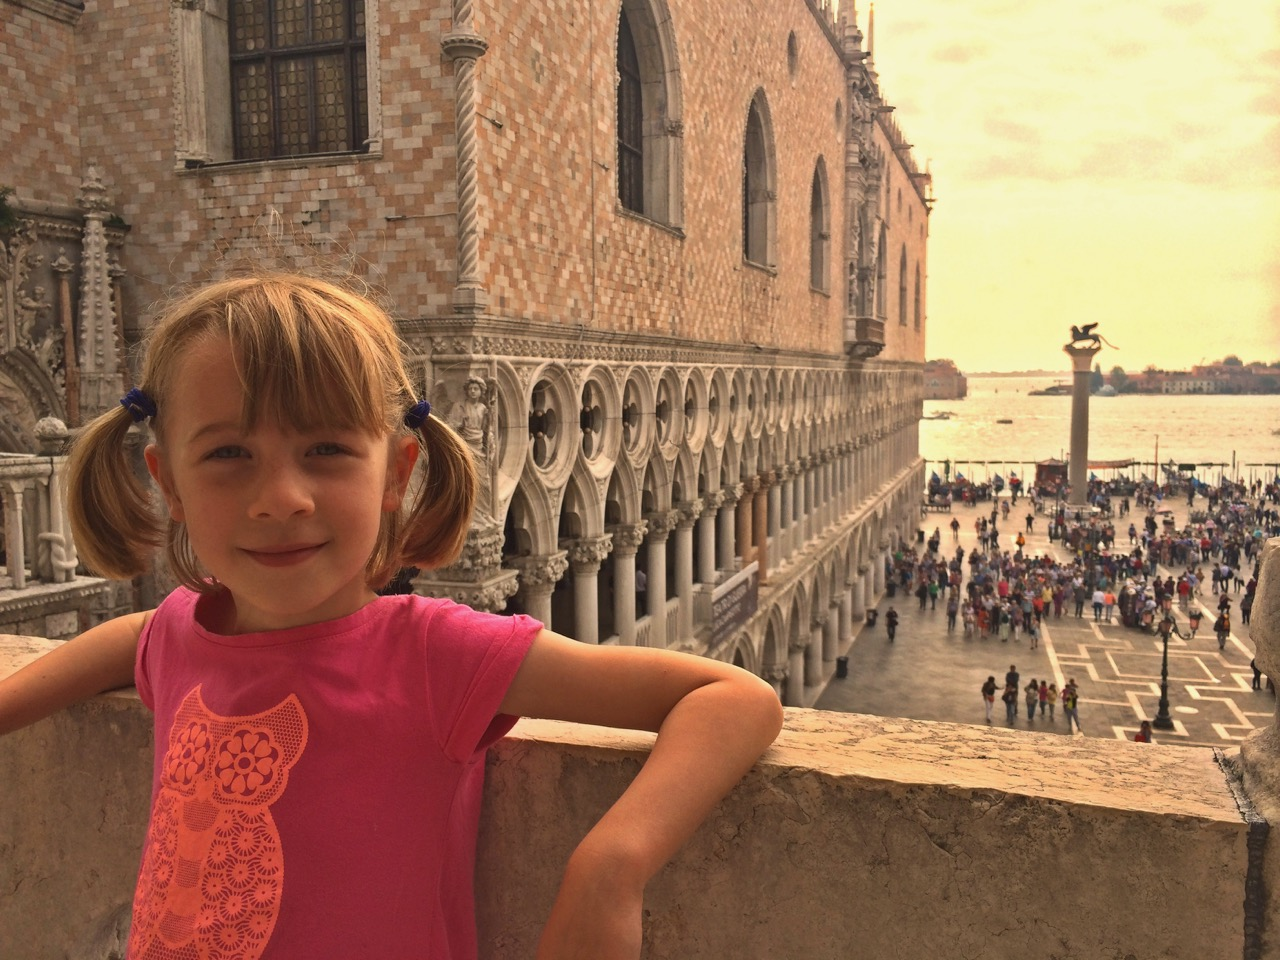 Lucy overlooking Saint Mark's Square